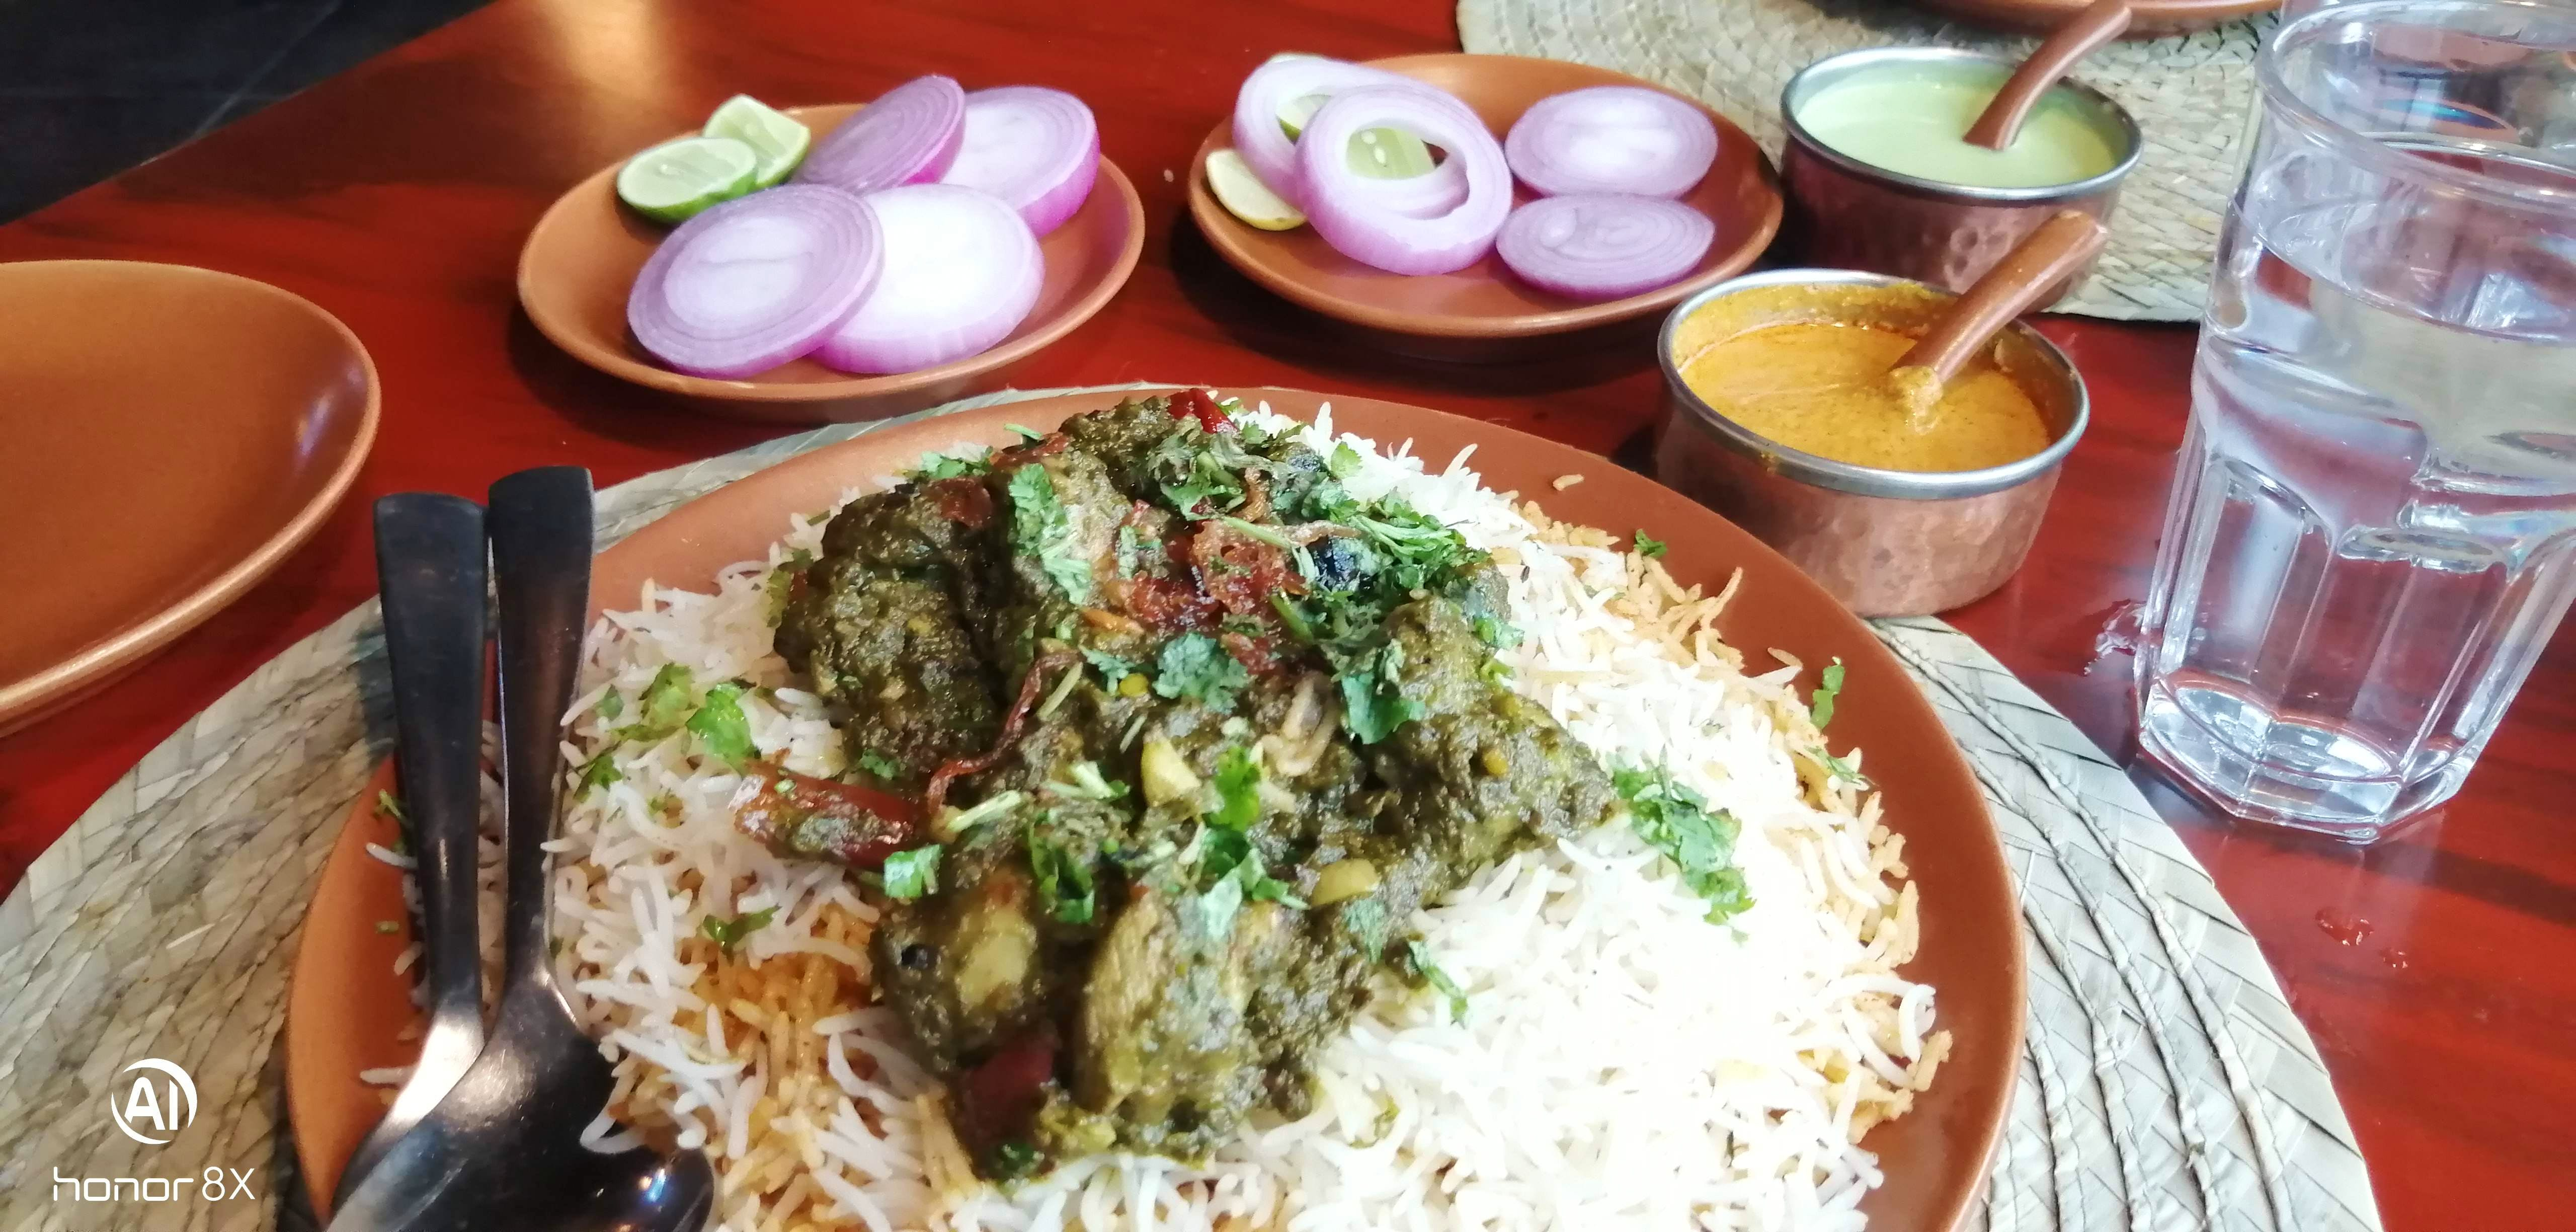 Dish,Food,Cuisine,Ingredient,Meal,Produce,Lunch,Plate lunch,White rice,Indian cuisine